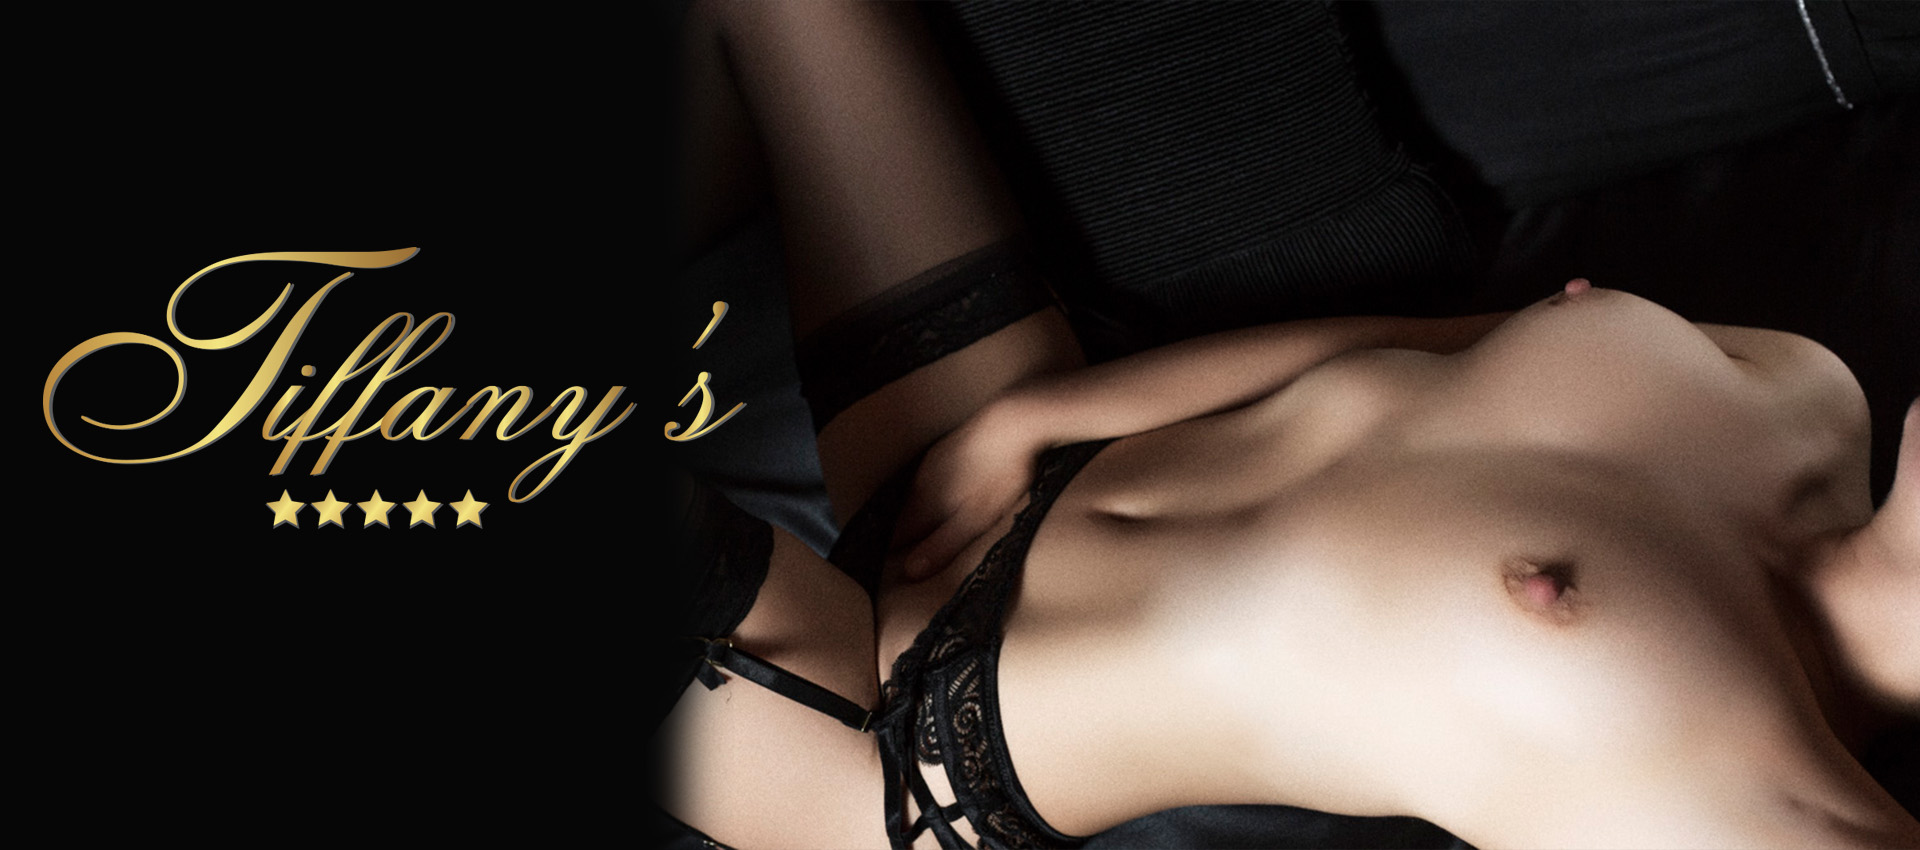 5 Star Brothel | Adult Services Sydney | Tiffany's Girls